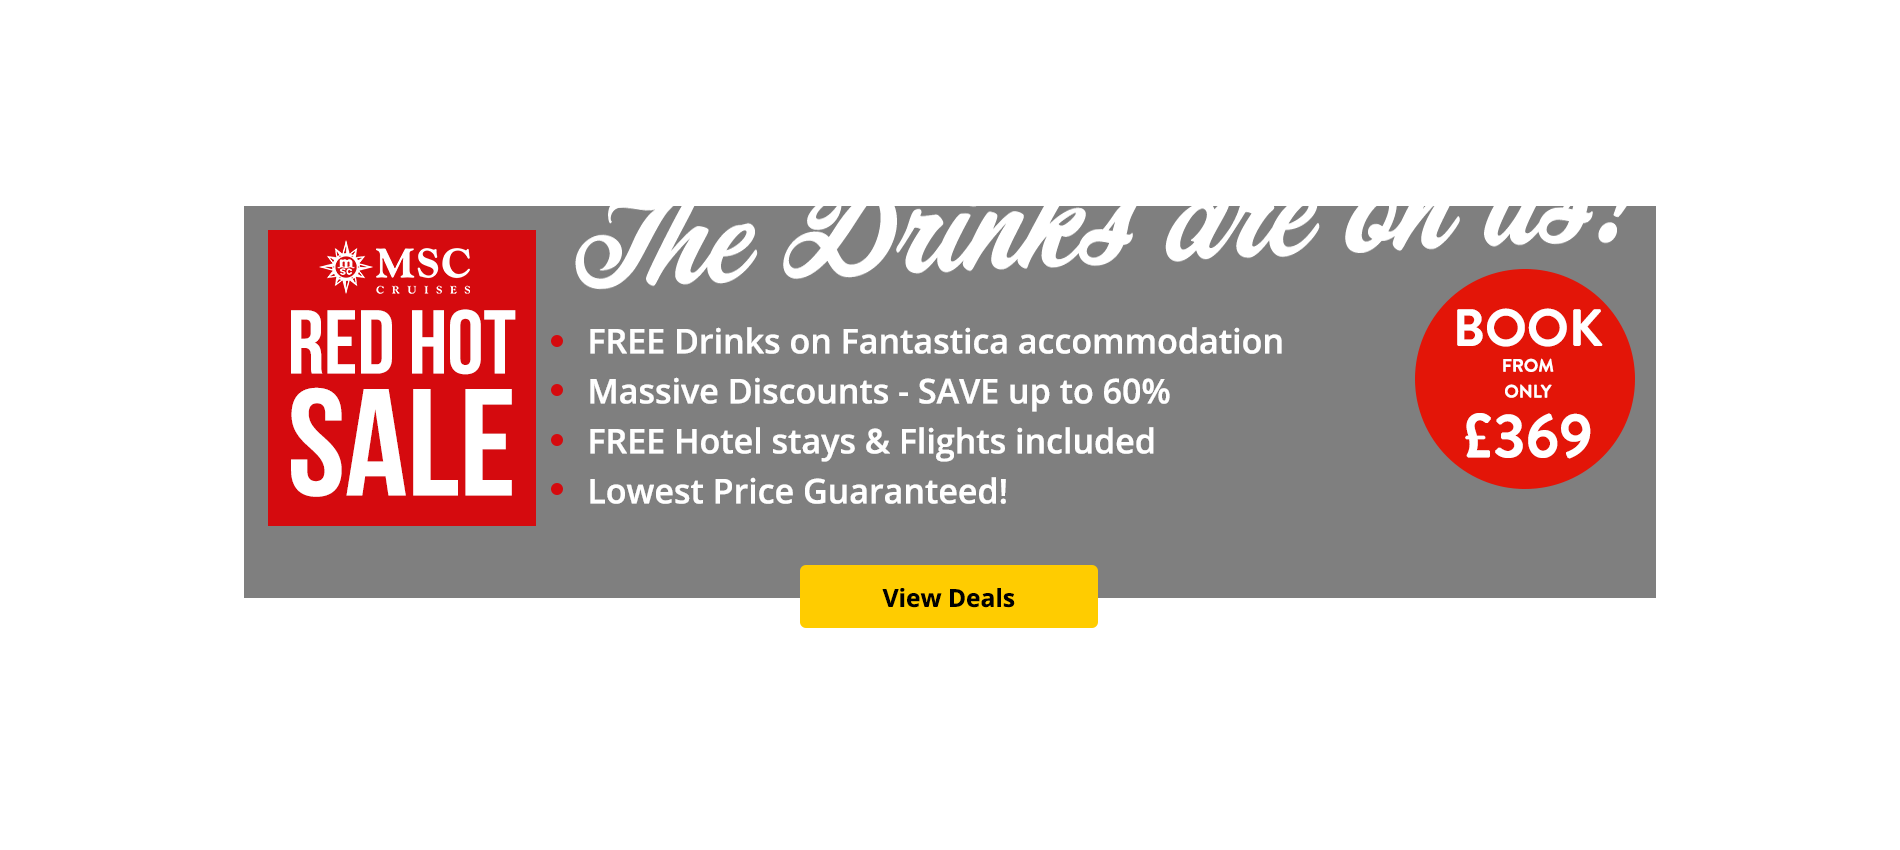 Looking for an MSC Cruise? The drinks are on us with free drinks on Fantastica Cabins! We've always said we have the lowest prices on MSC cabins, and with 30% off select cabins during our Red Hot Sale- we guarantee it! Your hotel stay and flights are included, so why not book now from just £9 per person?